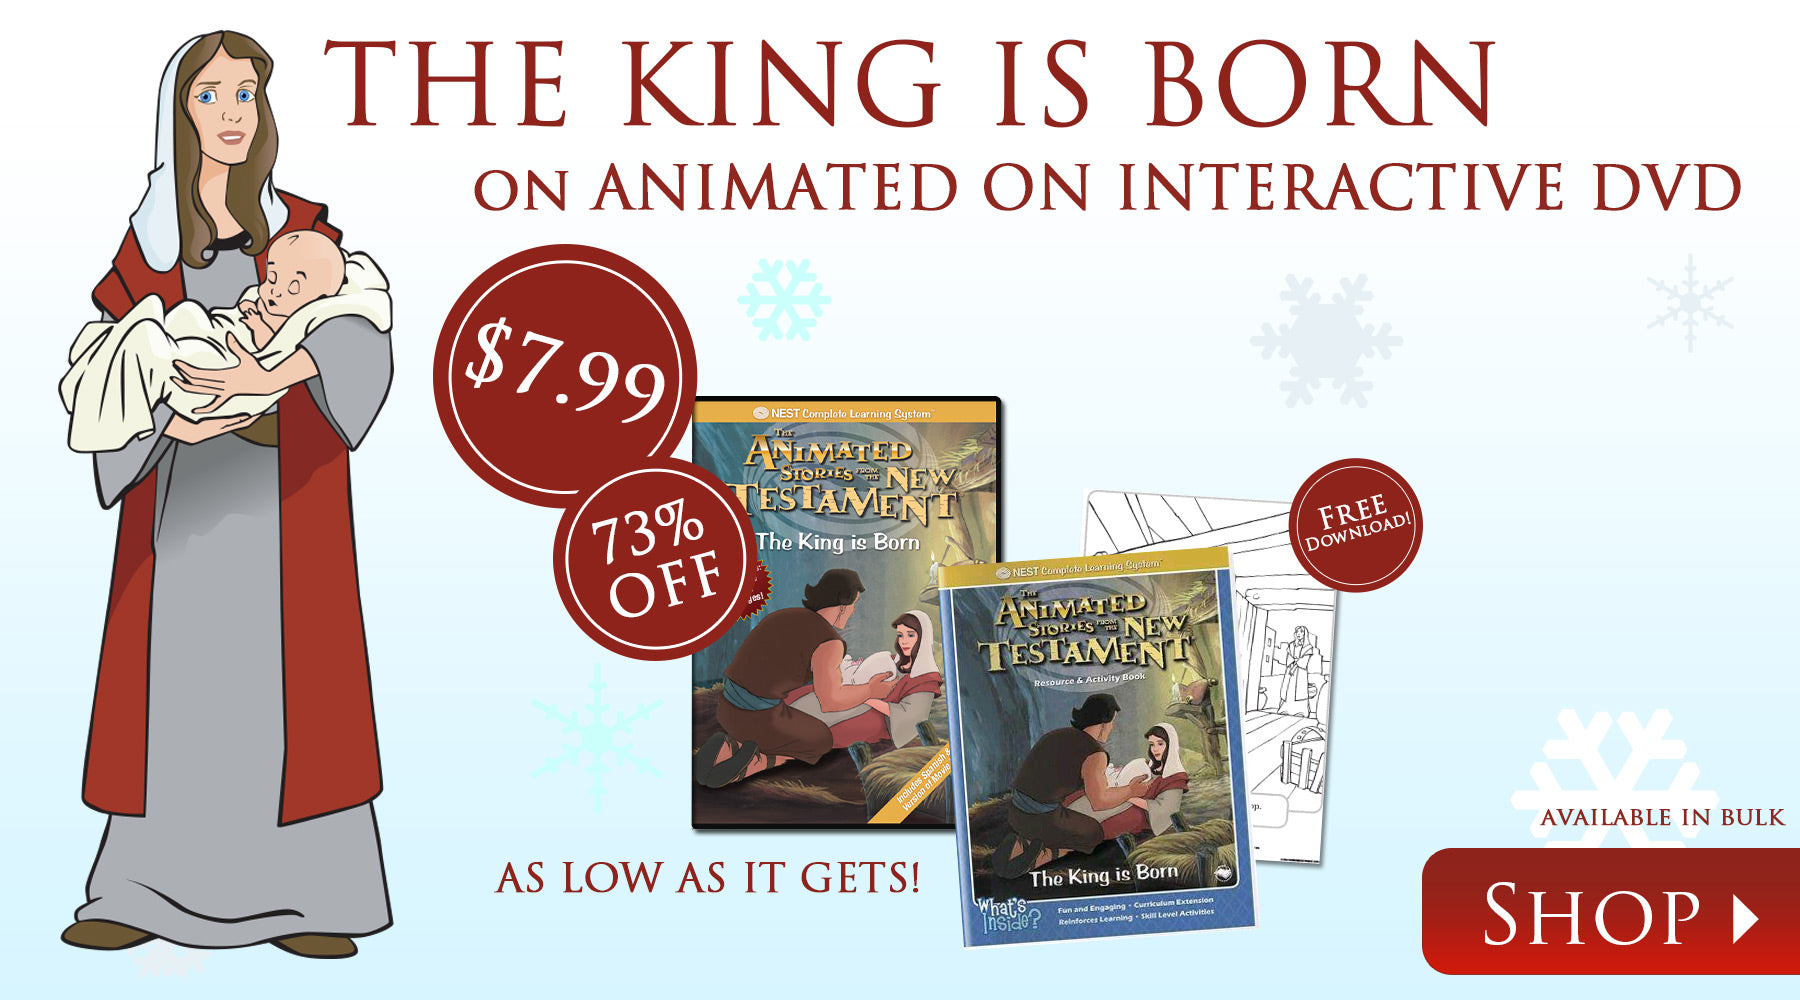 The King is Born on Animated Interactive DVD